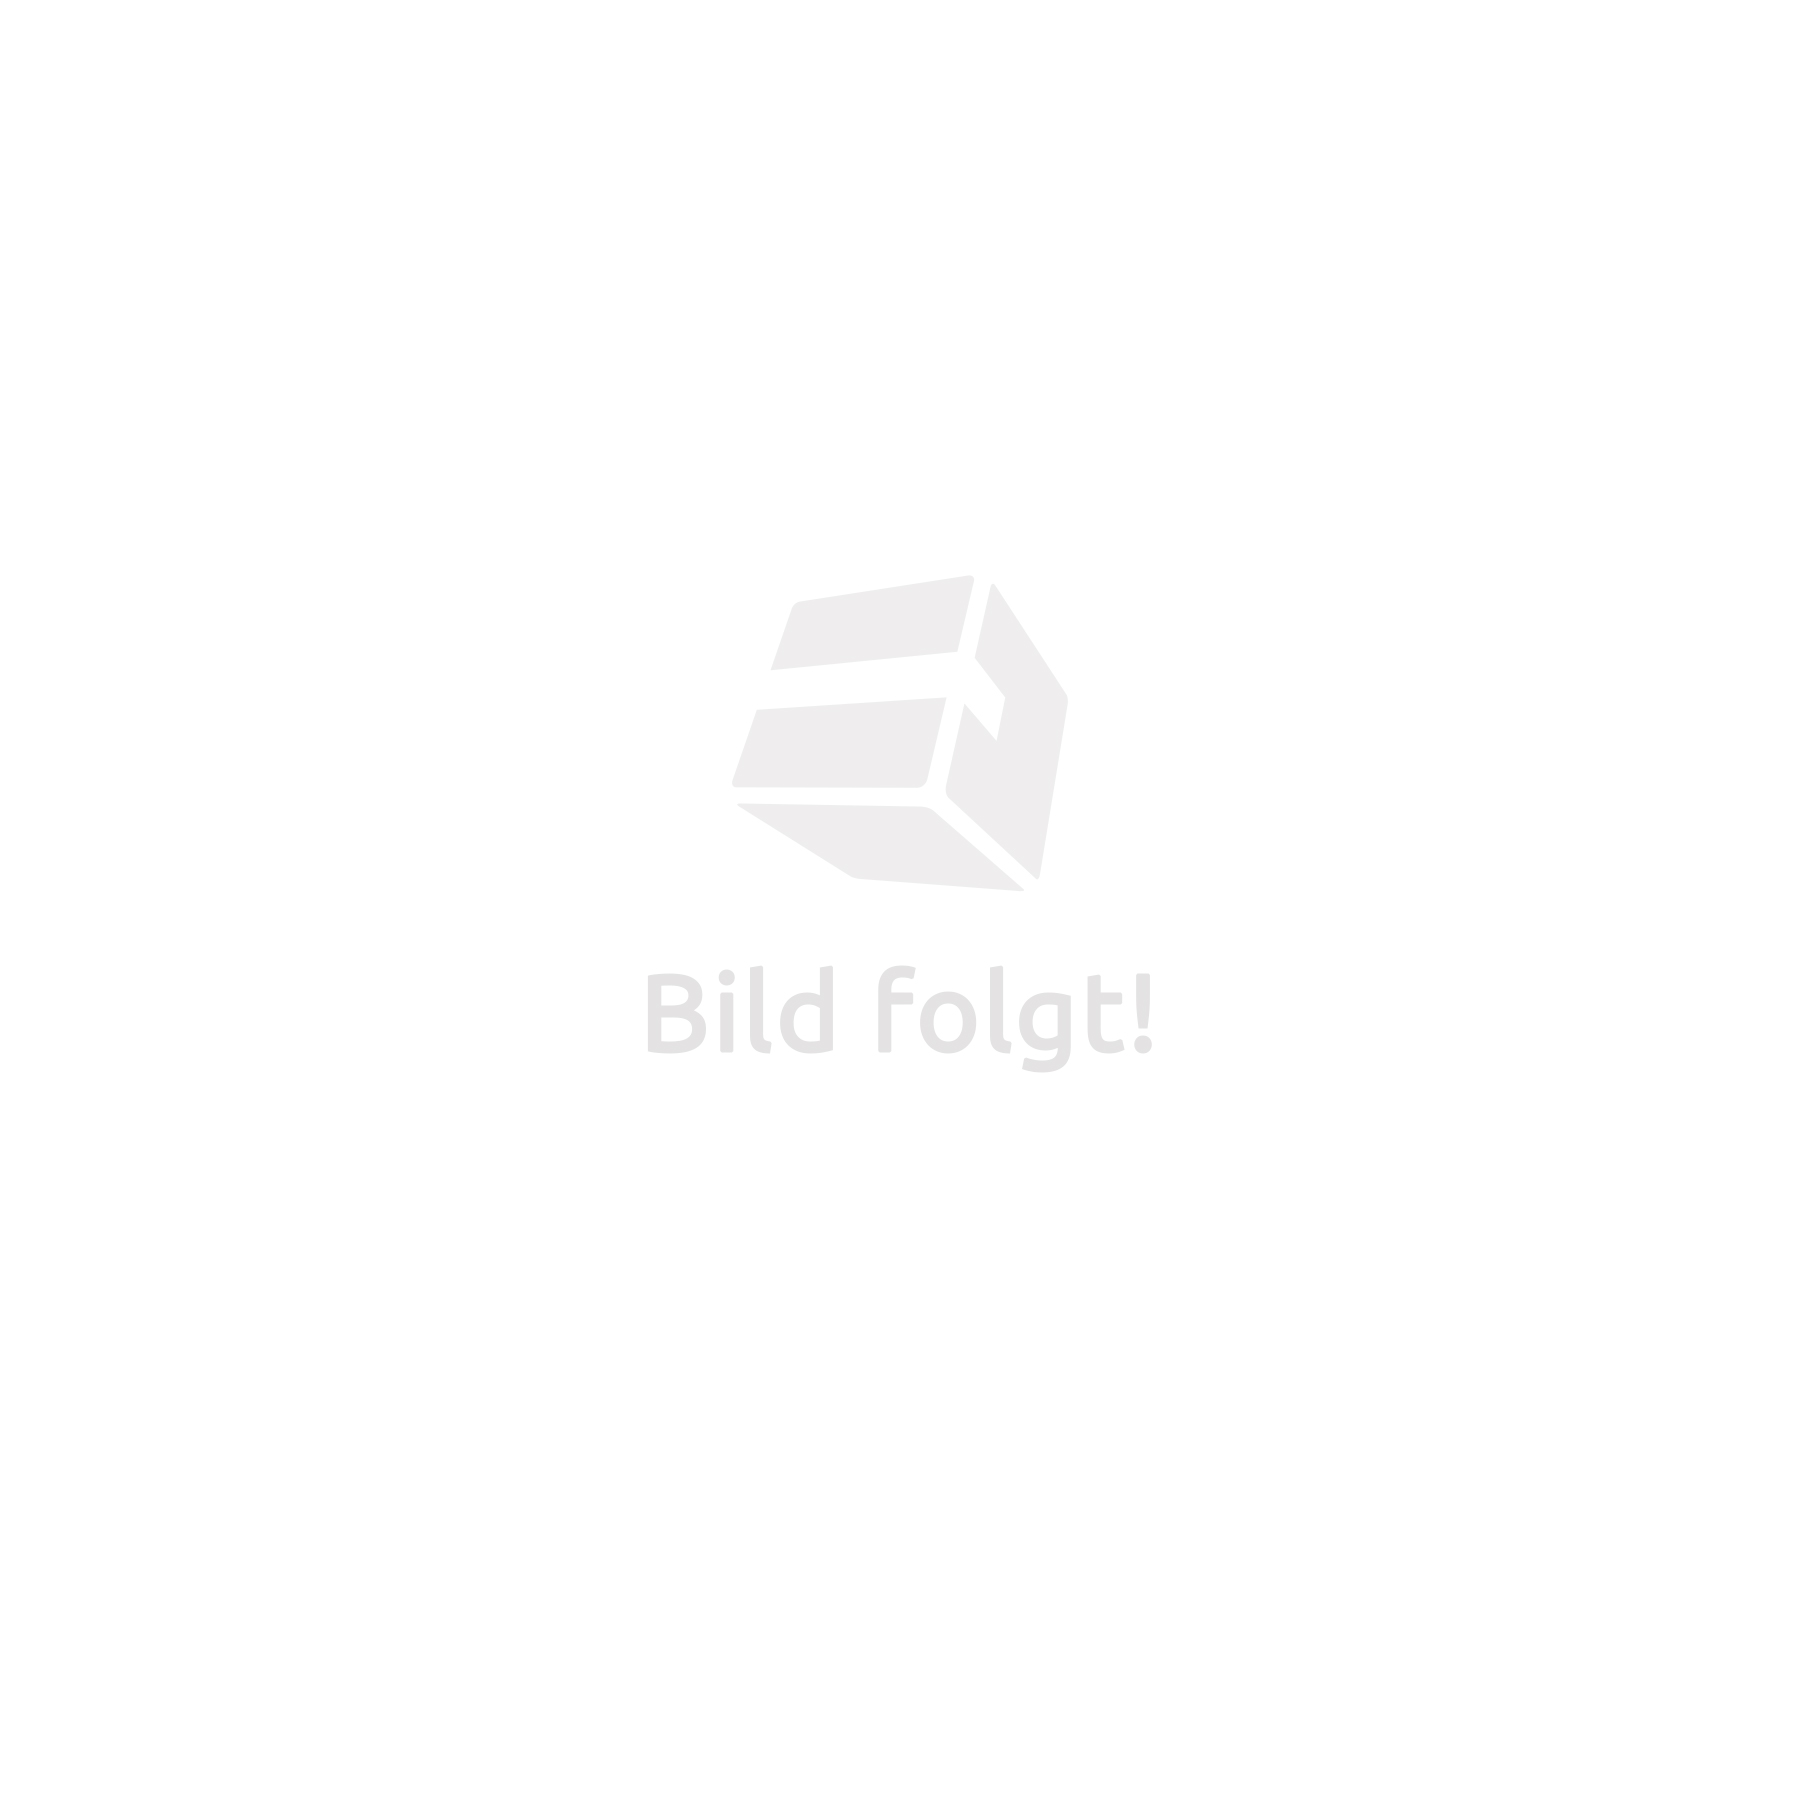 Ice maker for clear ice cubes